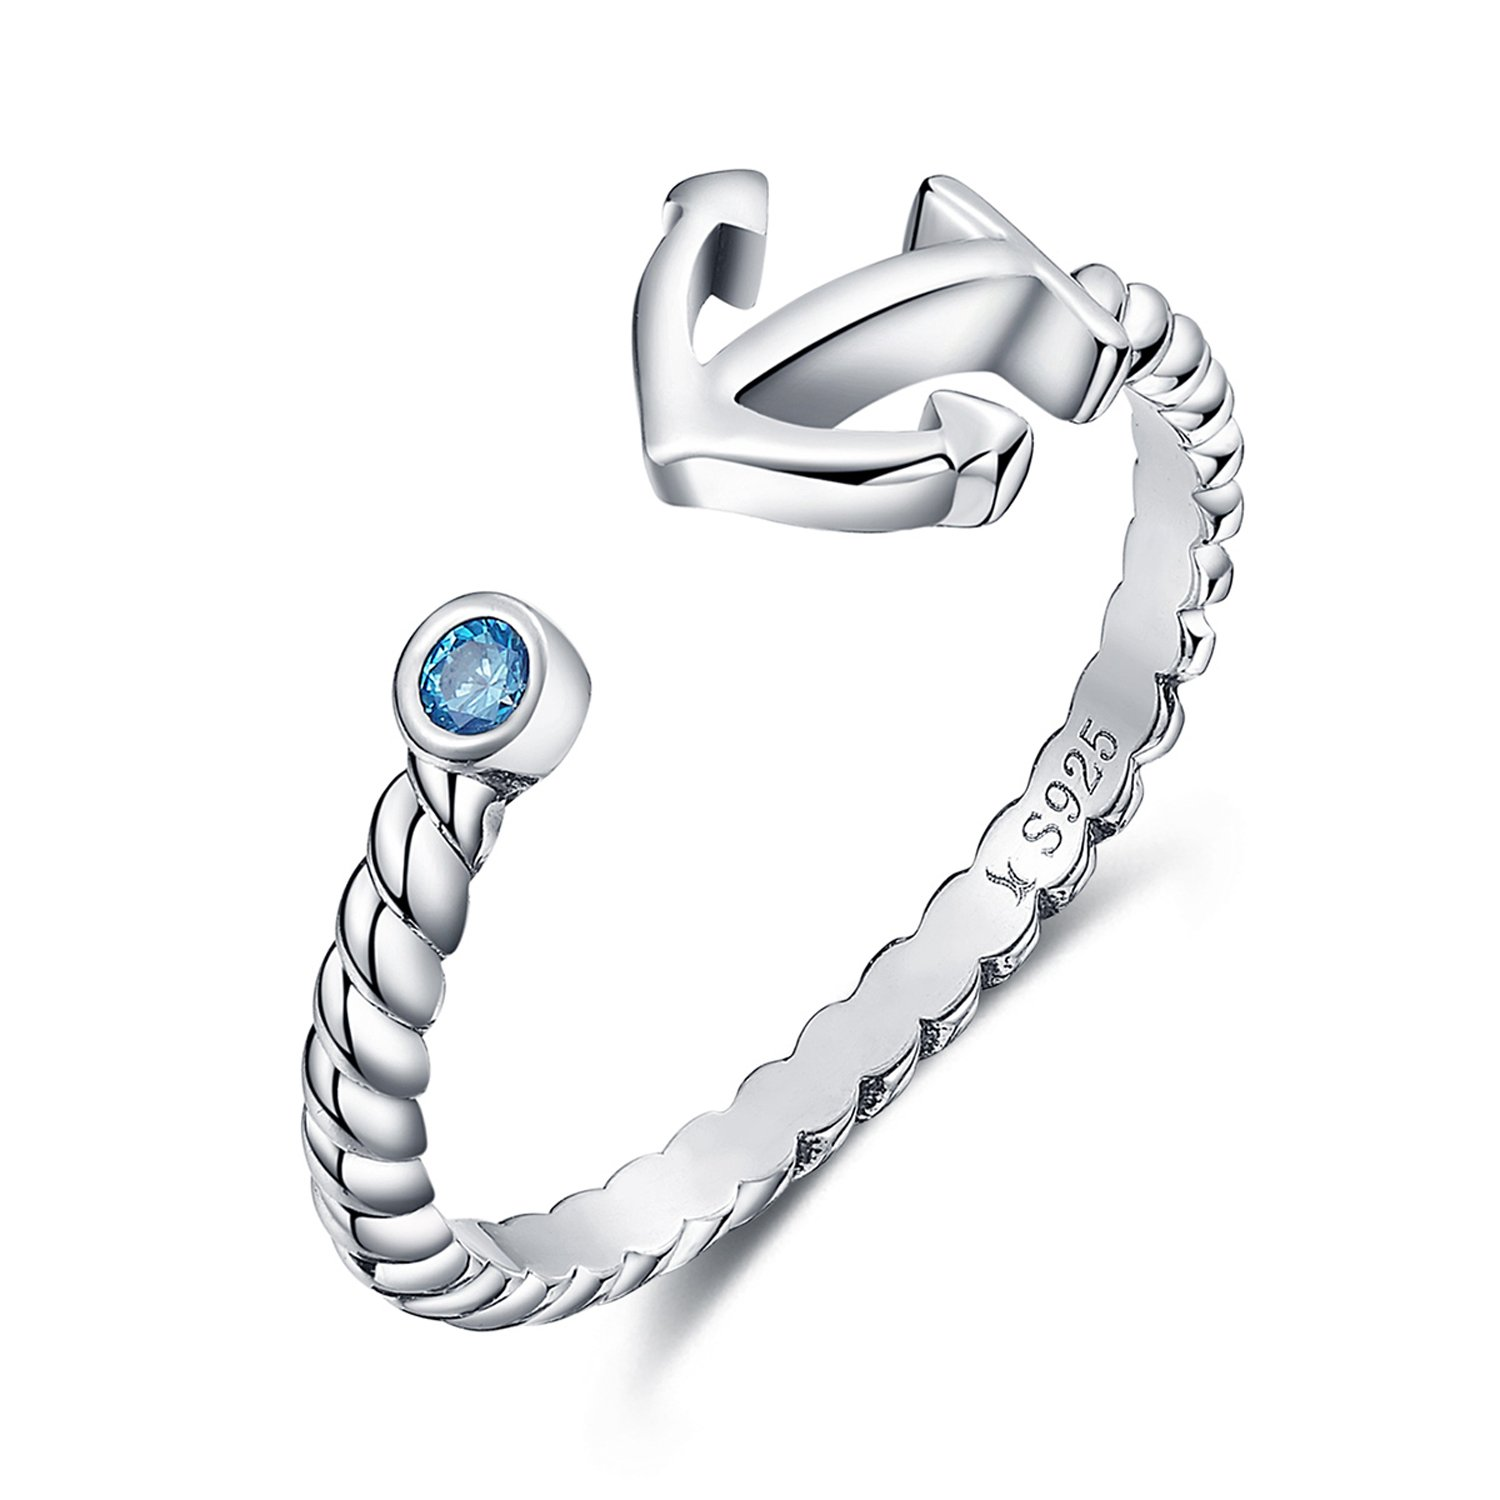 925-Sterling-Silver-Nautical-Anchor-Blue-Birthstone-CZ-Ring-Expandable-Open-Ring-Adjustable-Women-Jewelry